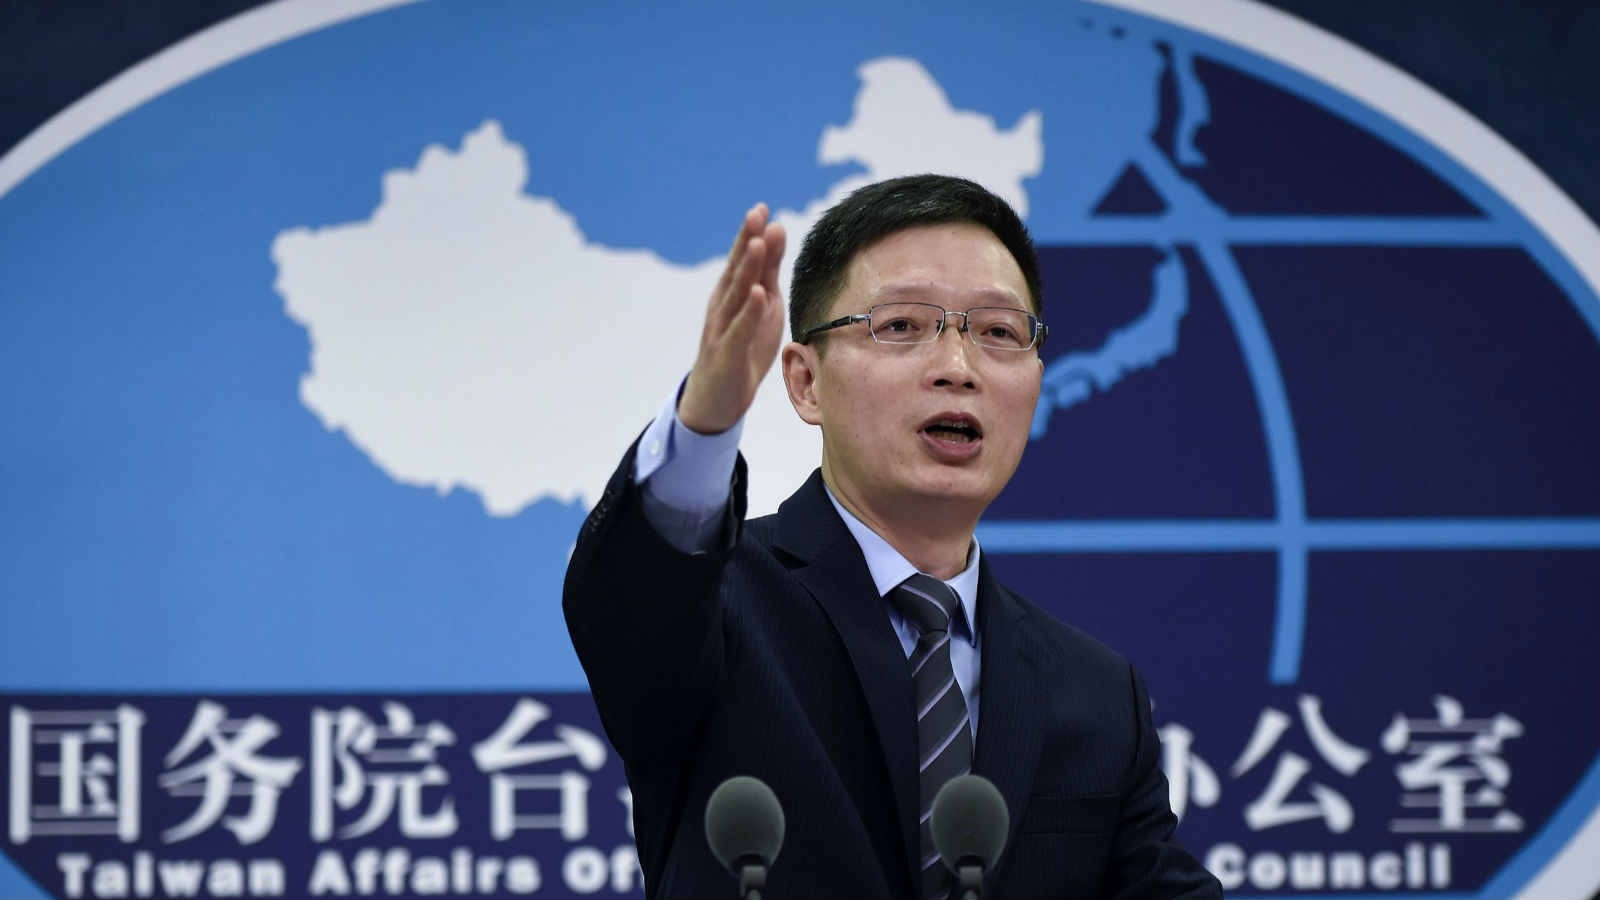 DPP's clinging to 'Taiwan independence' abominable: spokesperson